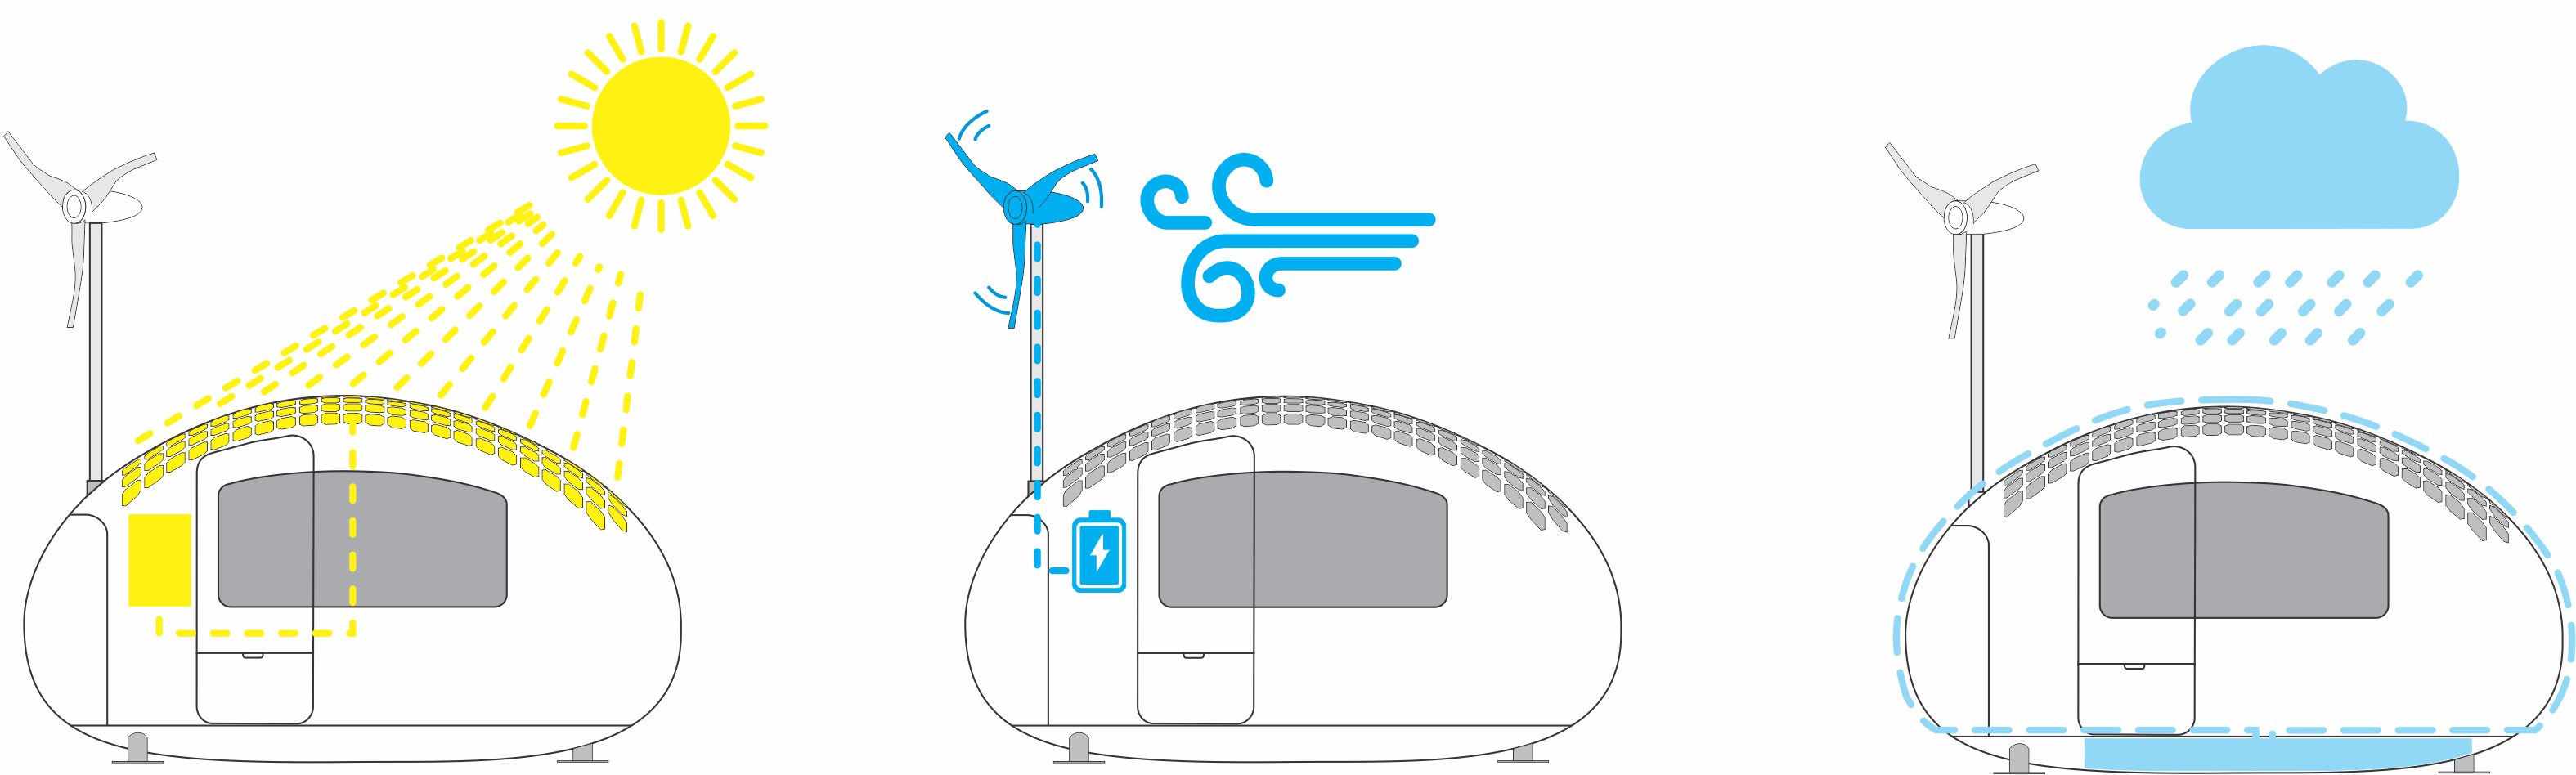 A scheme showing how the Ecocapsule runs on solar and wind energy and filters water.